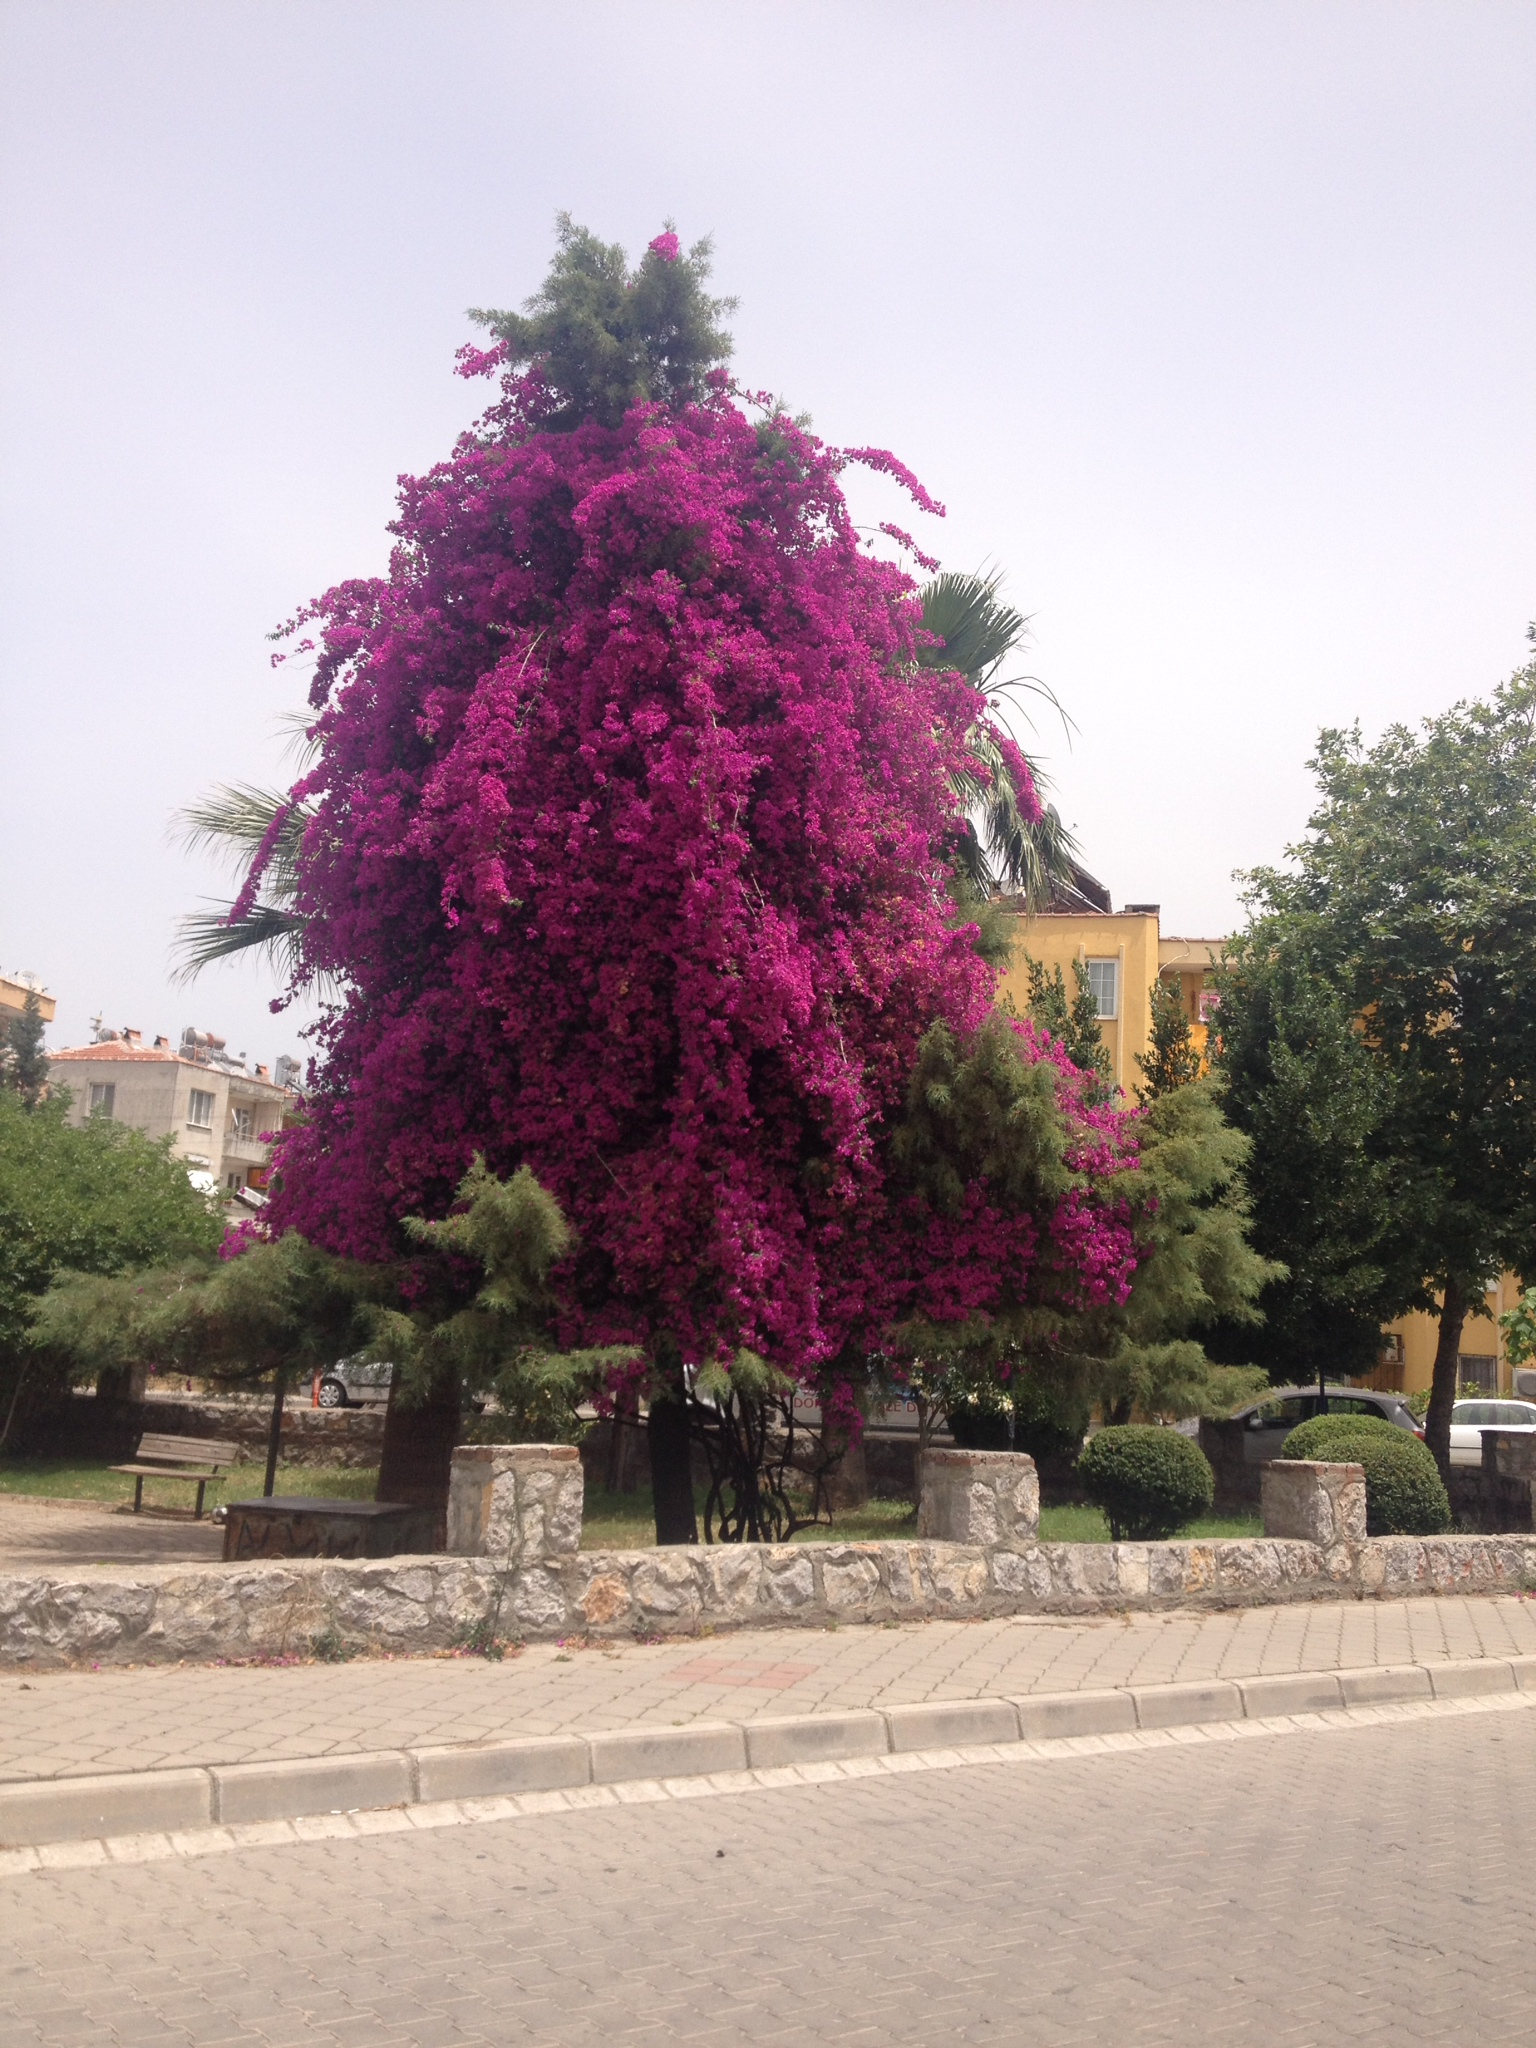 The bougainvillea has completely engulfed this pine tree!